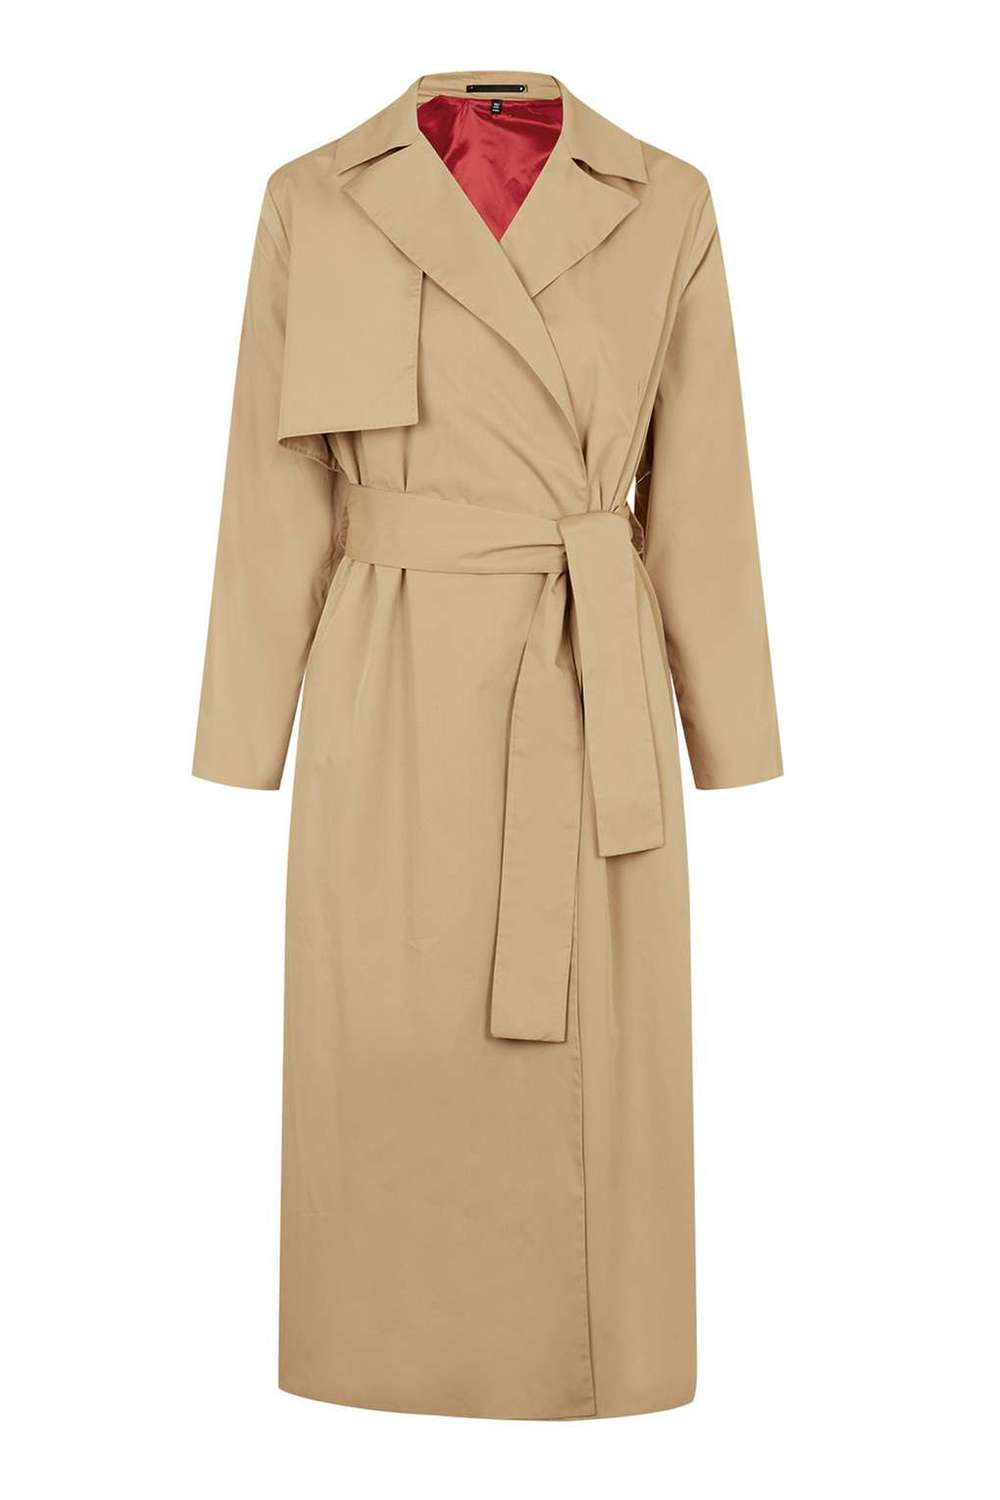 Lightweight Trench By Boutique  Price: £165  Shop it  here